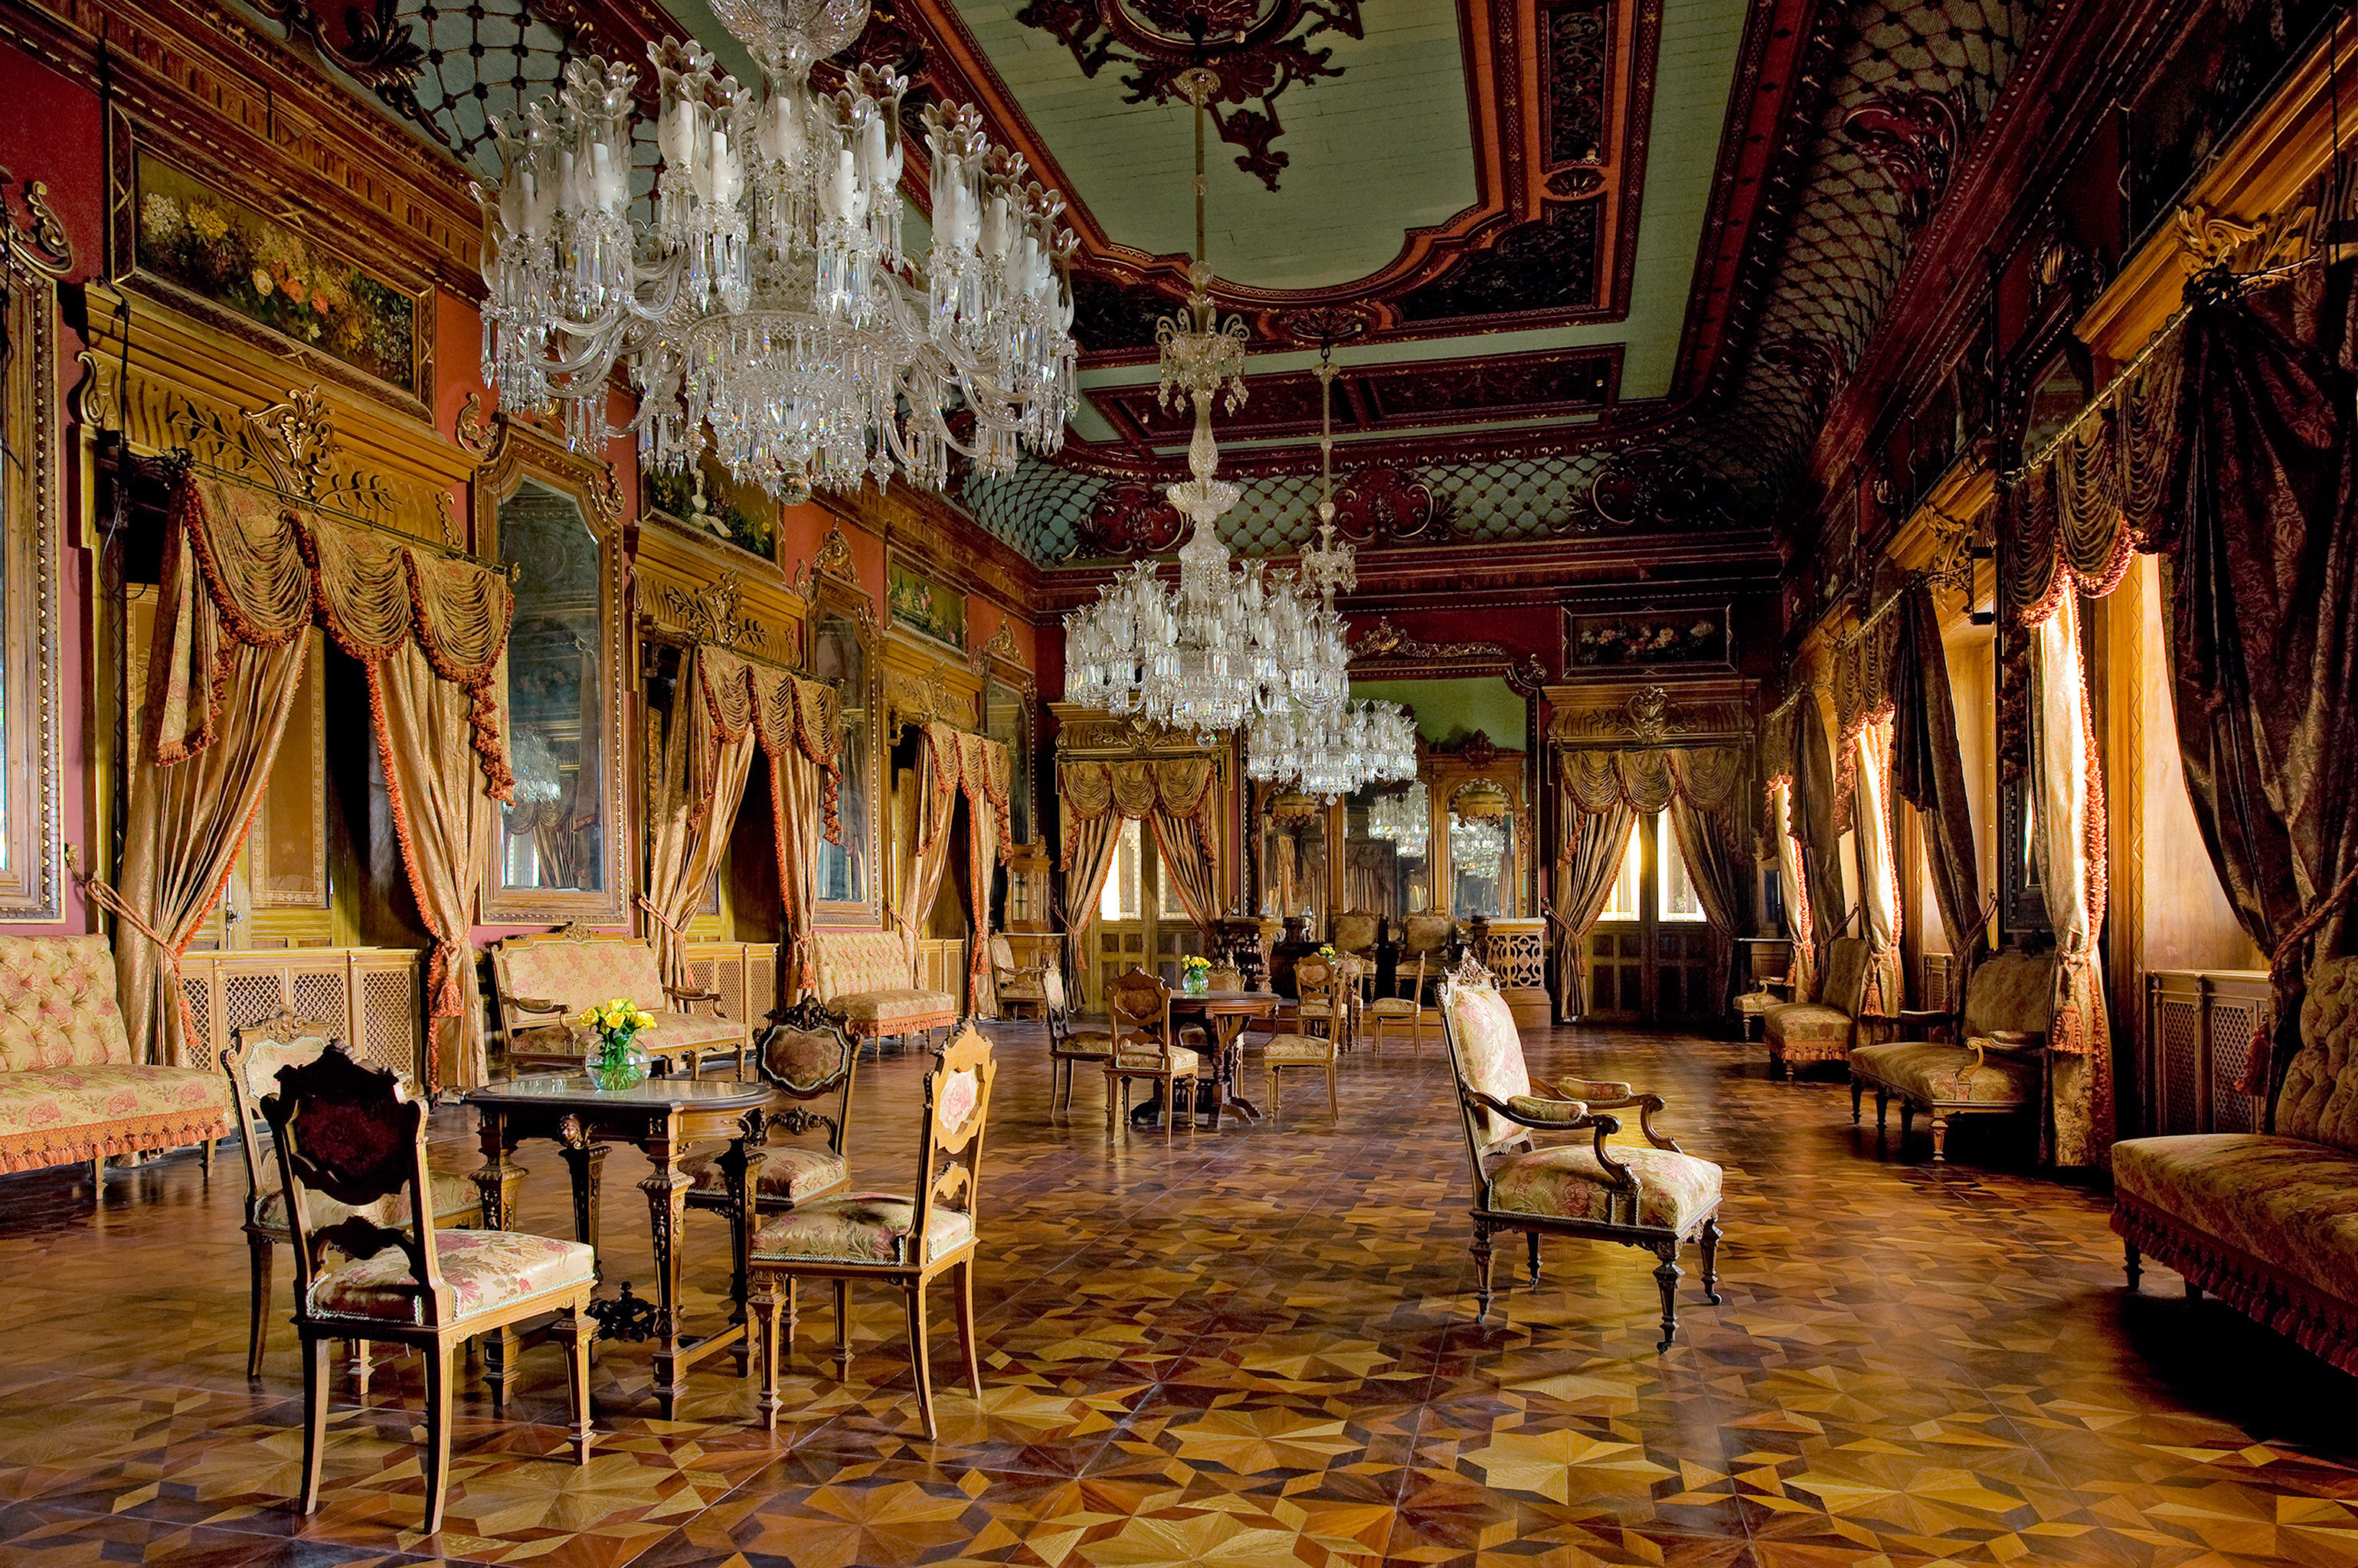 Design Elegant Hotels Lounge Luxury Travel Tips floor indoor building night palace ancient history place of worship temple restaurant several dining room